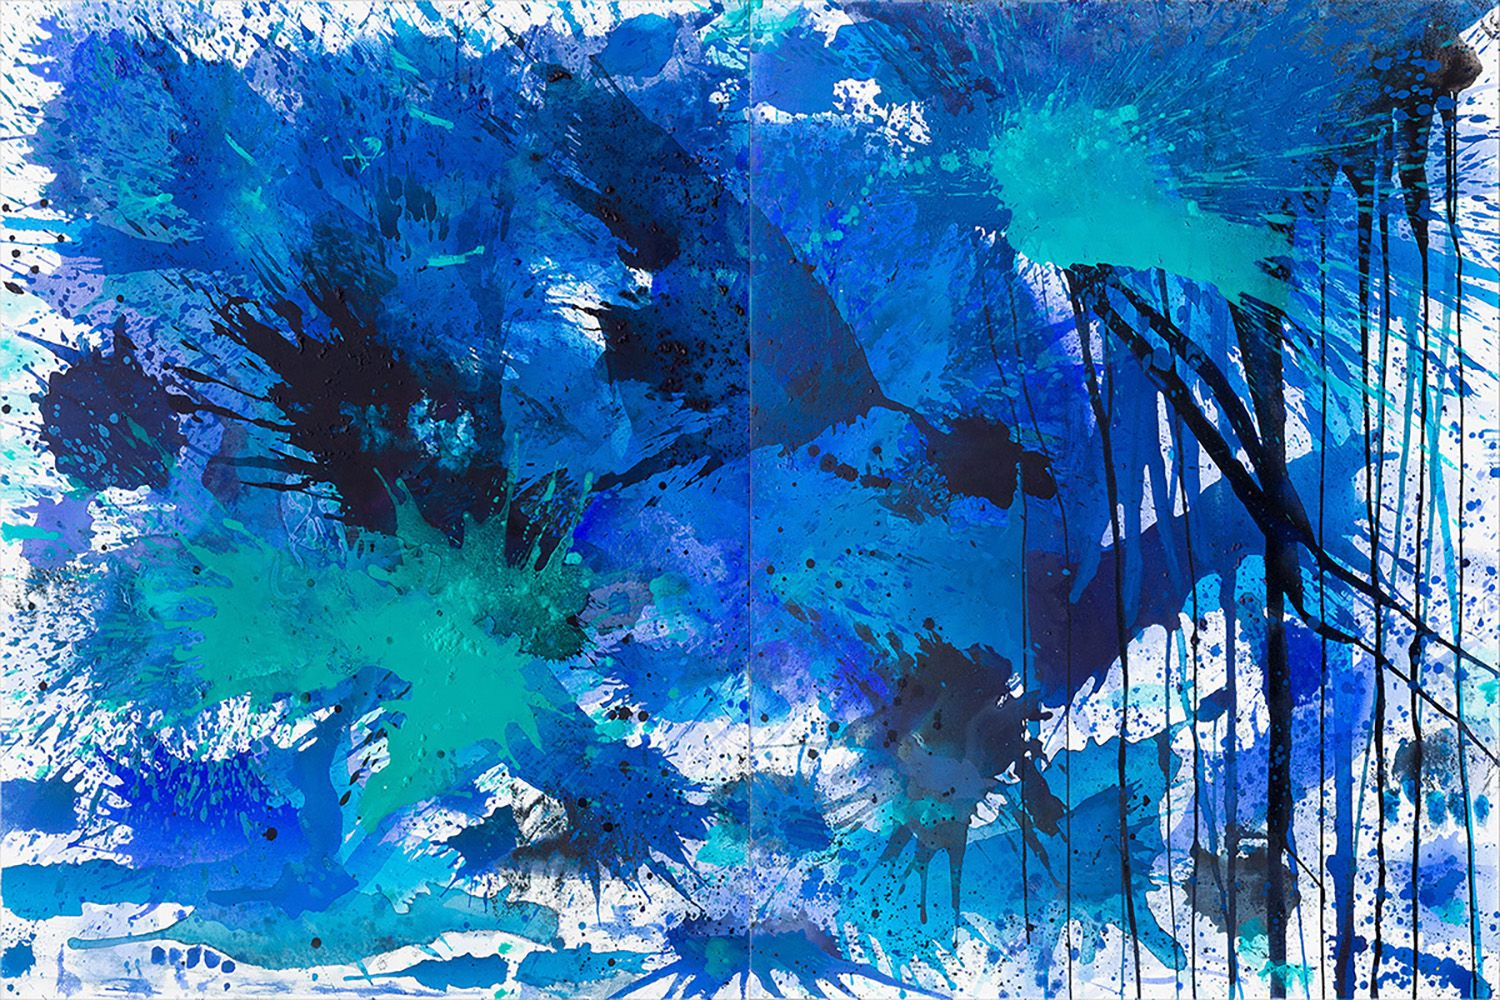 J. Steven Manolis, BlueLand Splash, 2015, 48 x 72 inches, Abstract expressionism paintings for sale at Manolis Projects Art Gallery, Miami, Fl